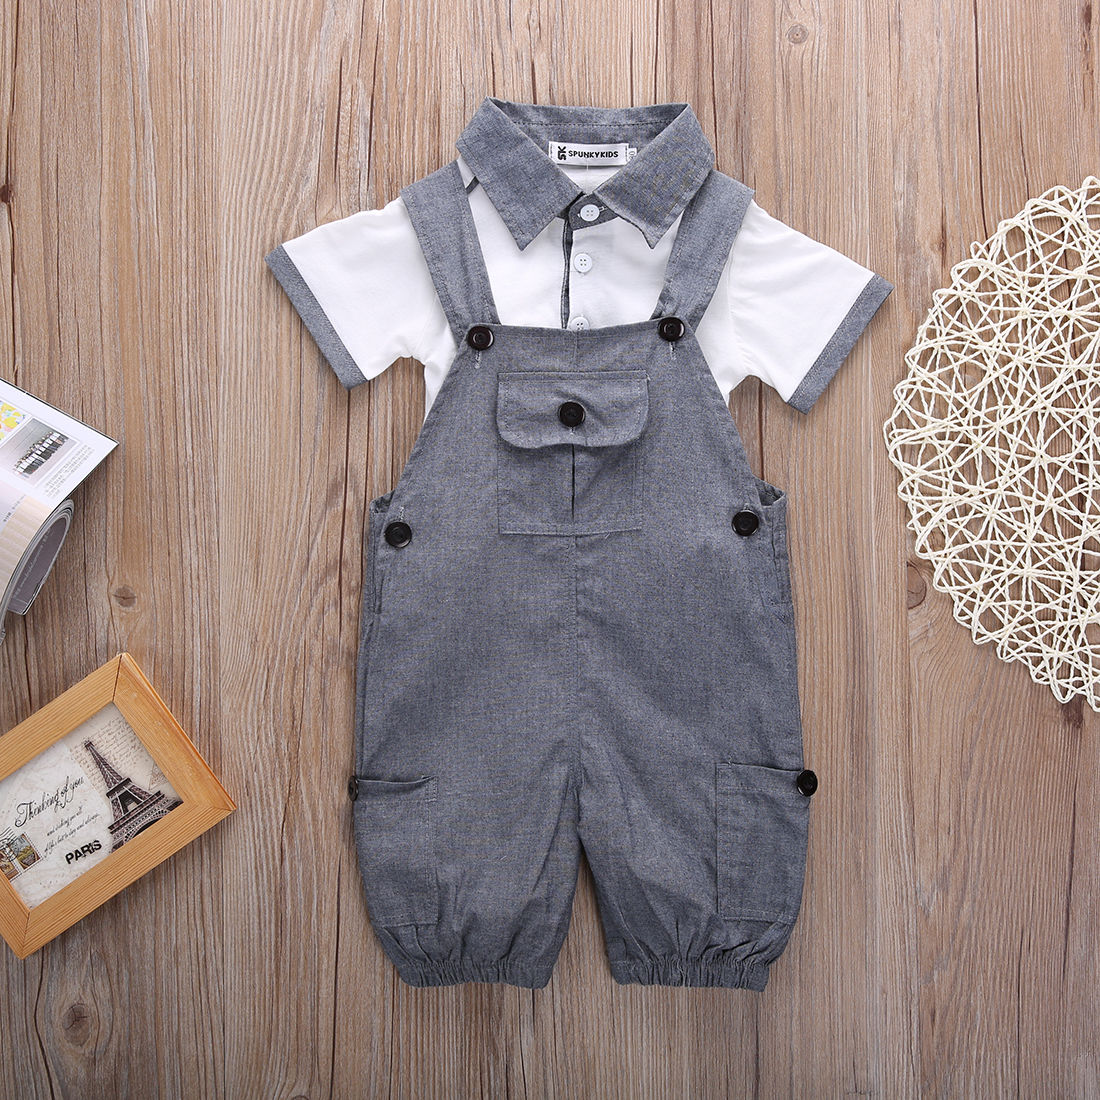 Newborn Infant Toddler Baby Kids Boys Clothes T shirt Tops Pants Jumpsuit 2PCS Outfits Casual Set puseky 2017 infant romper baby boys girls jumpsuit newborn bebe clothing hooded toddler baby clothes cute panda romper costumes